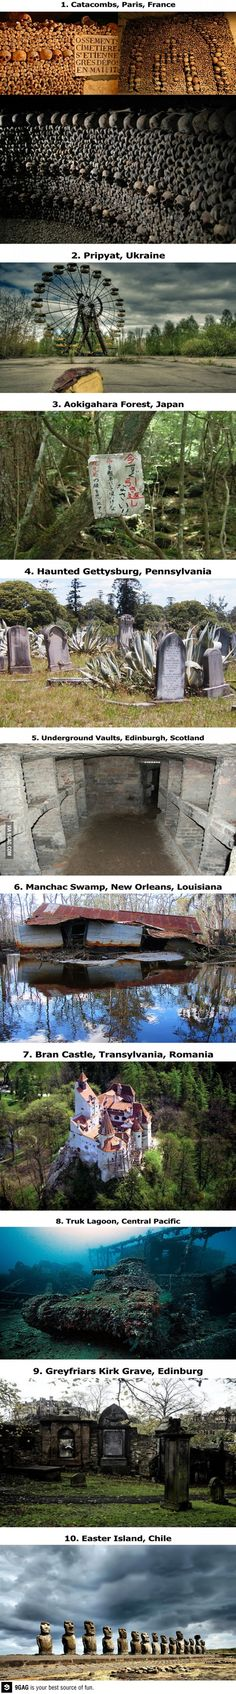 10 scary places in the world. I wanna go! Just maybe not at night!